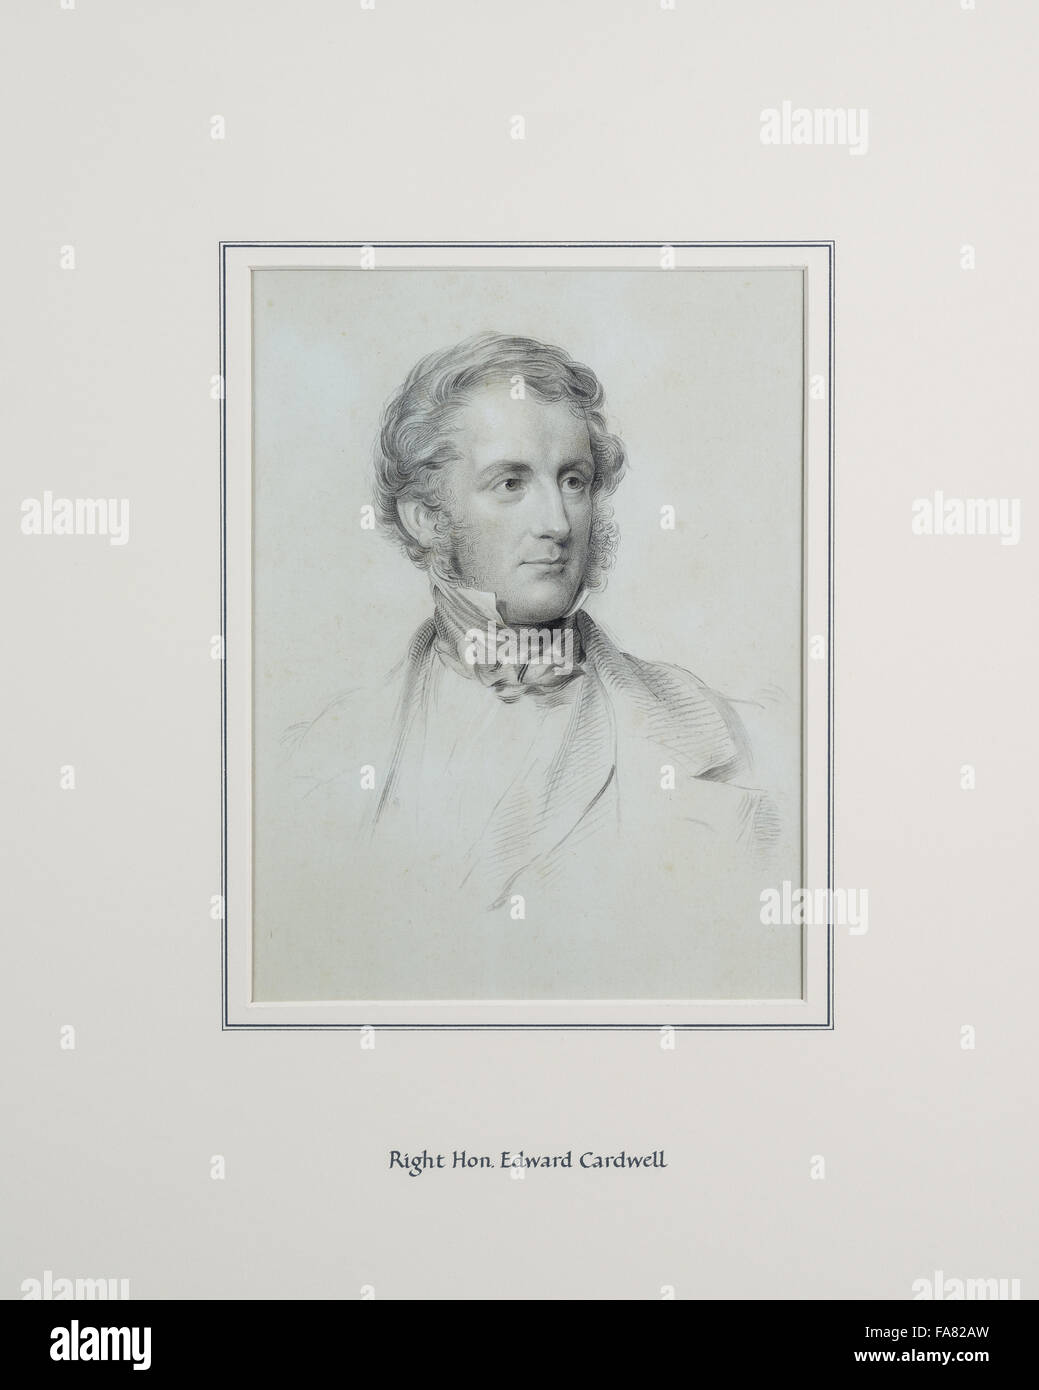 EDWARD CARDWELL, FIRST VISCOUNT CARDWELL DCL, PC, (1813-1886) by George Richmond RA, at Killerton, Devon. Paper, - Stock Image